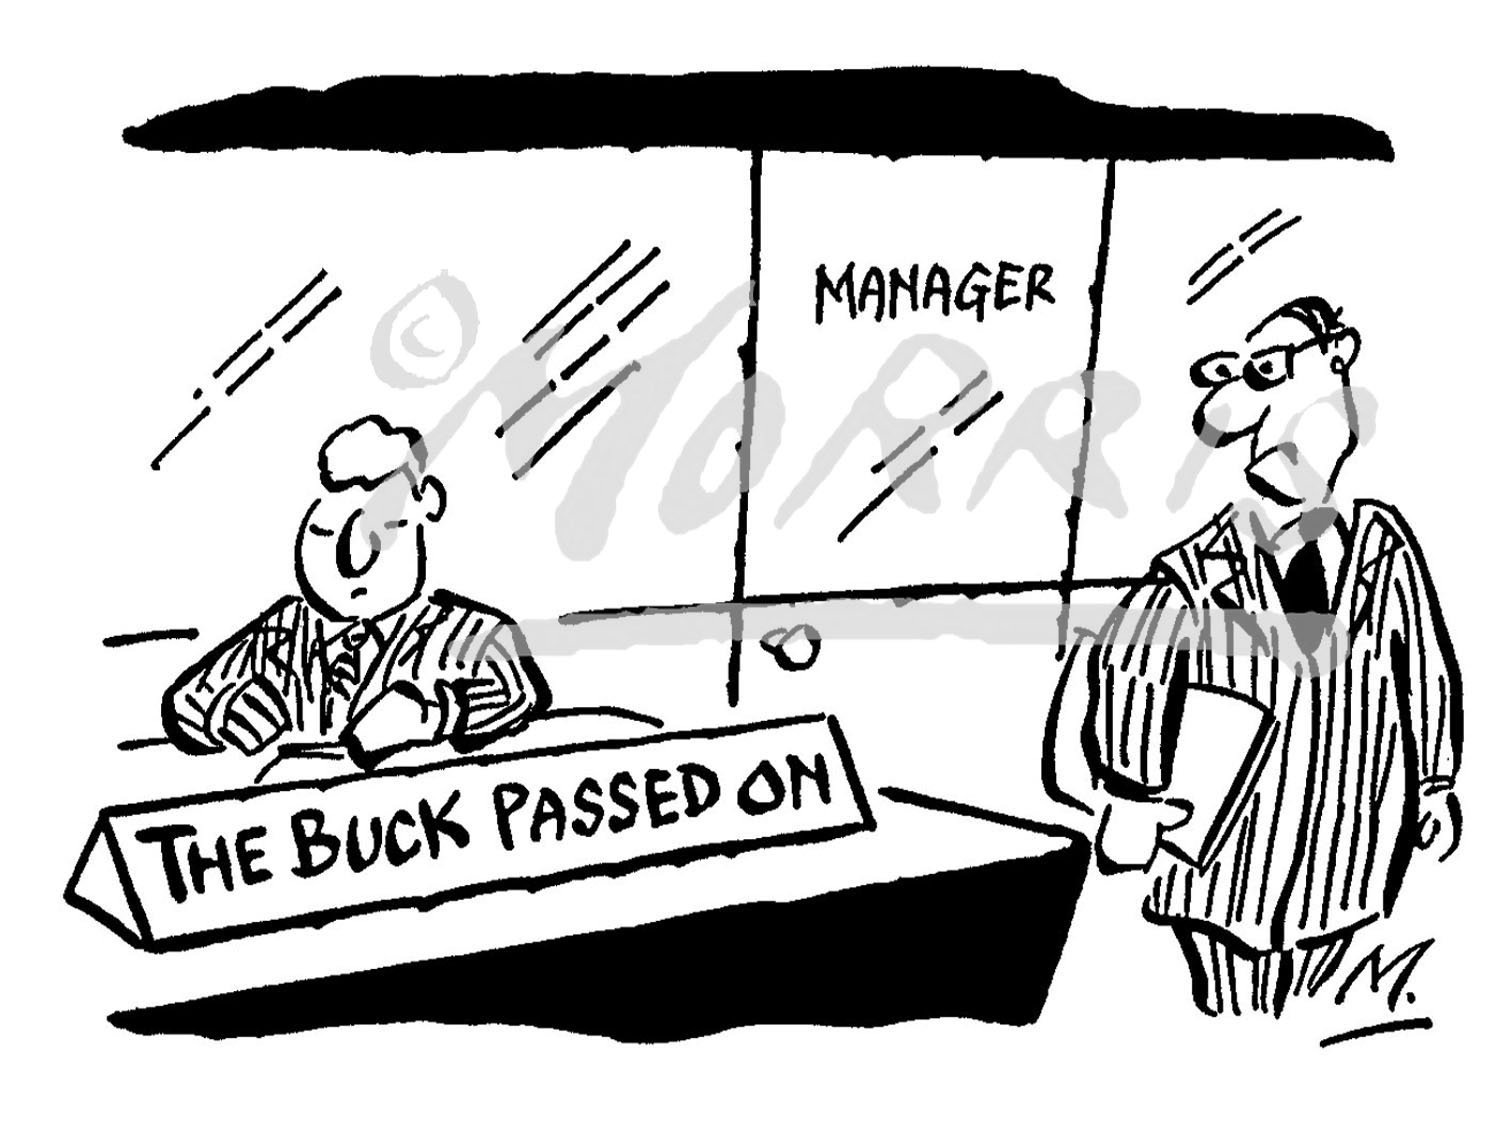 Employee management comic cartoon Ref: 0668bw